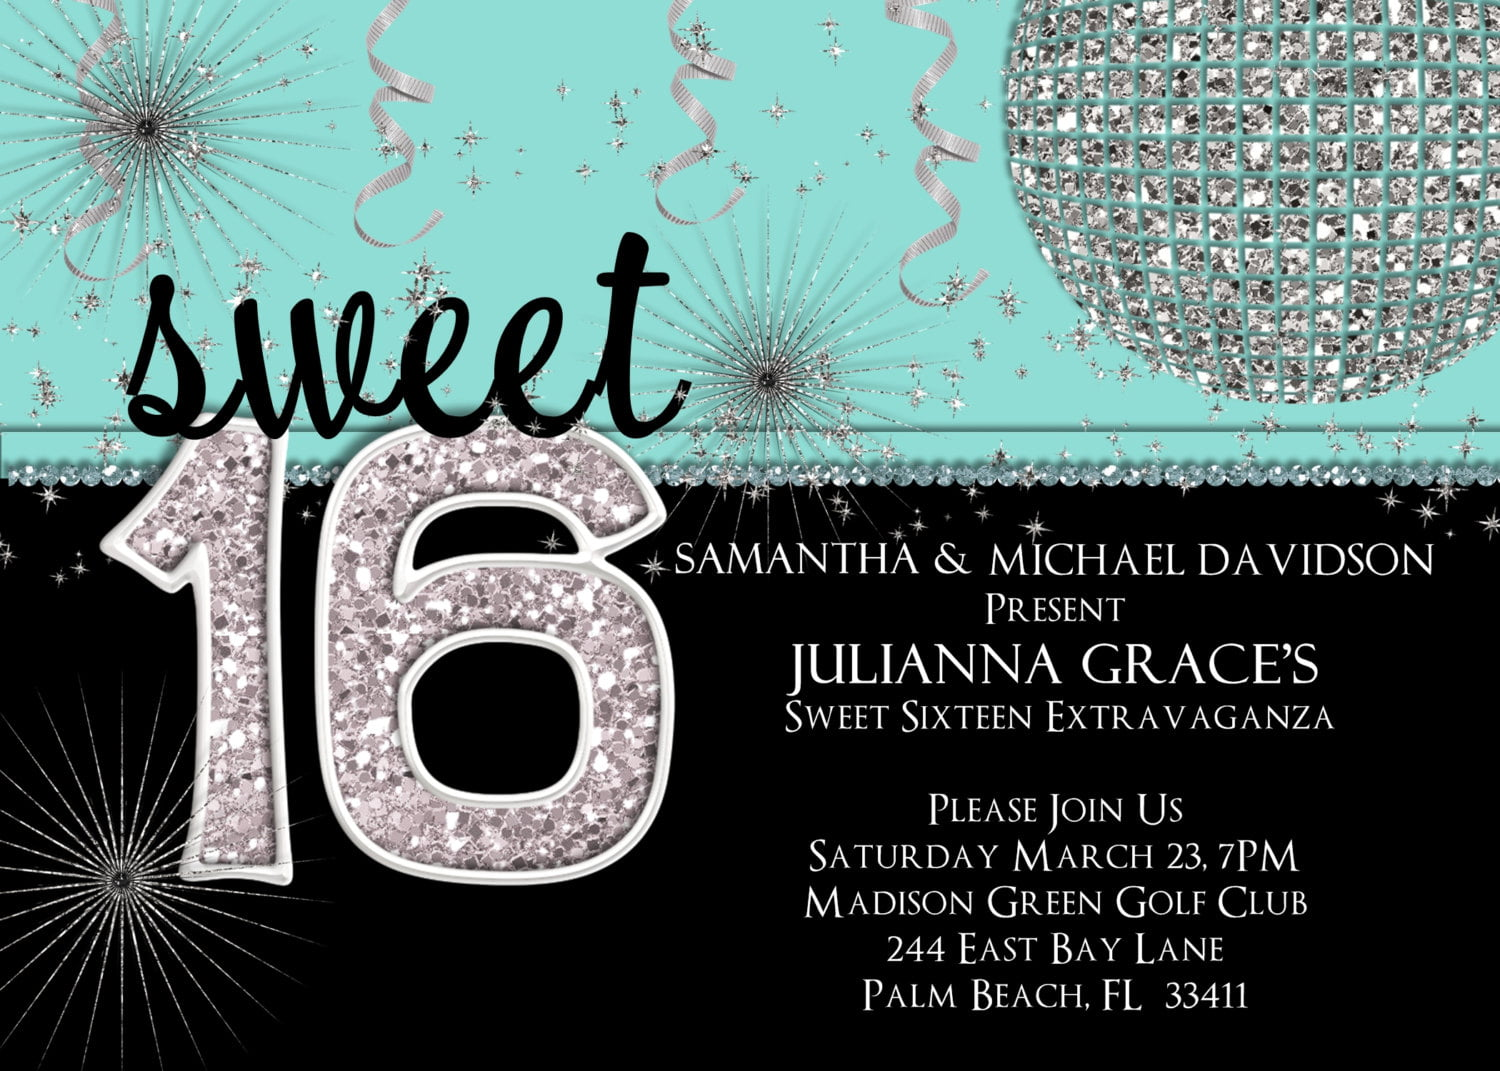 Sweet 16th Birthday Invitations Templates Free – Sixteen Birthday Invitations